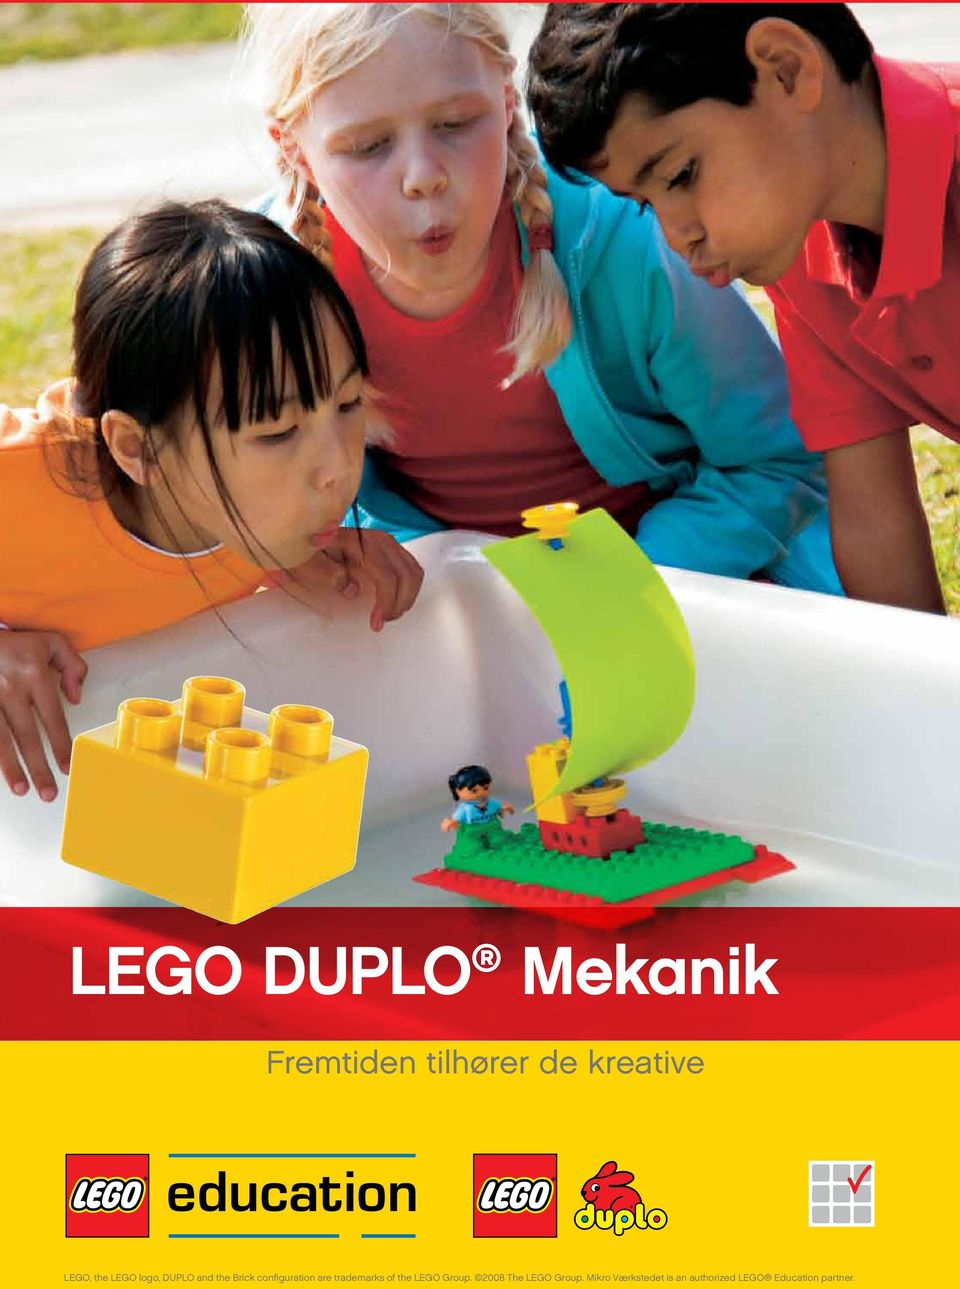 are trademarks of the LEGO Group. 2008 The LEGO Group.